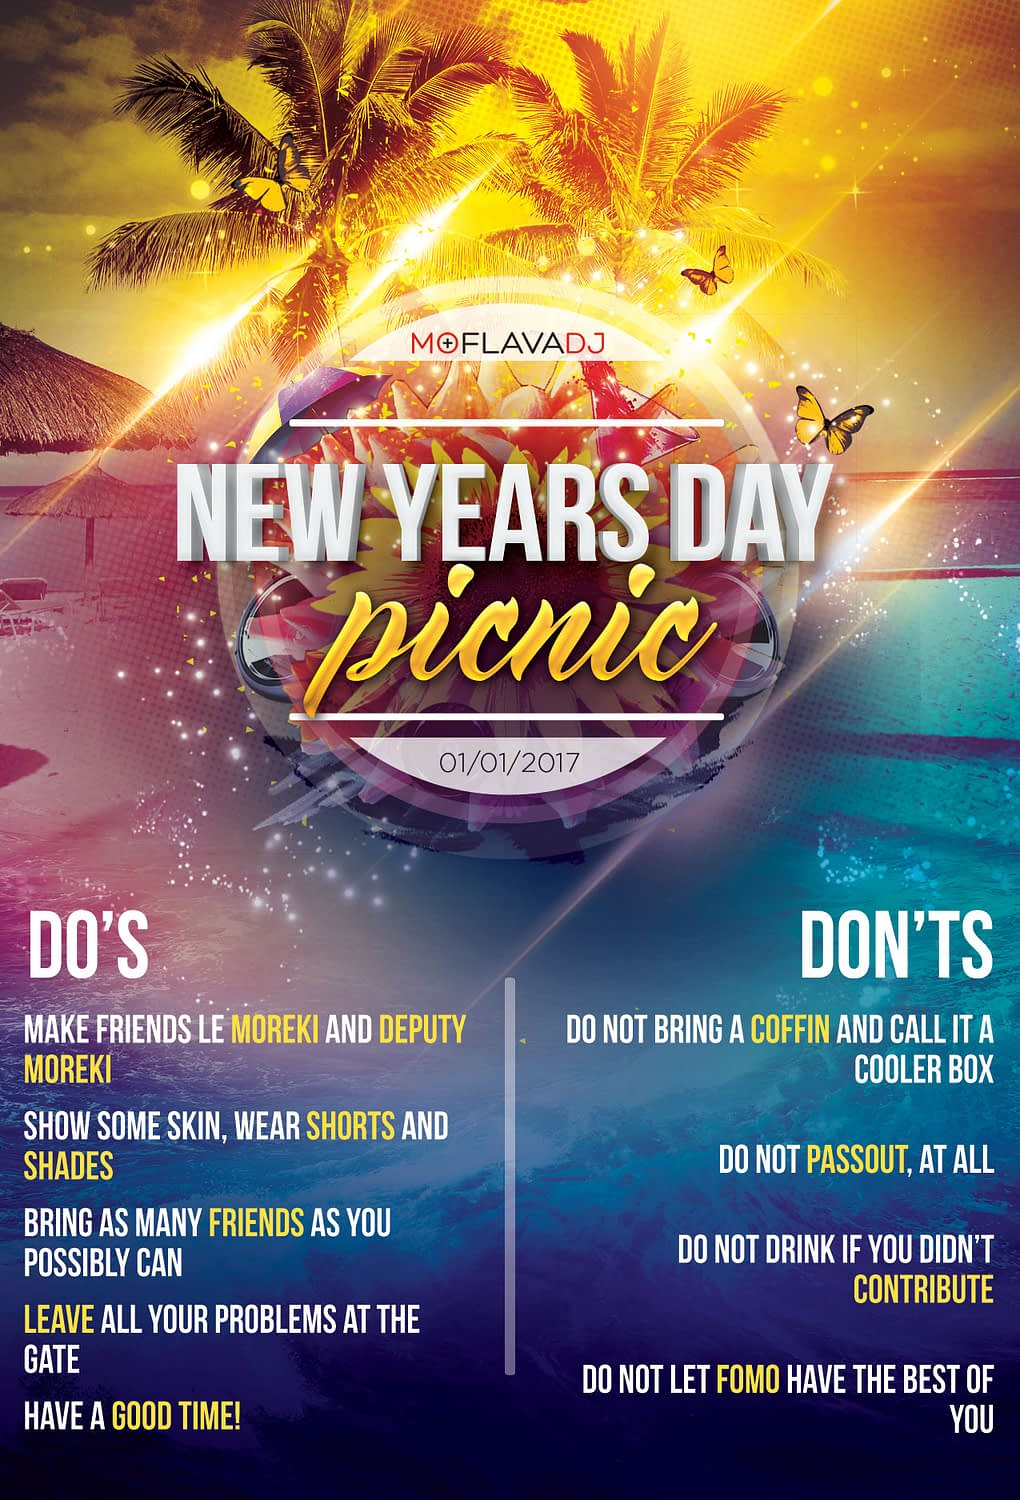 New Years Day Picnic '17 DOs & DONTs | KEMOSO